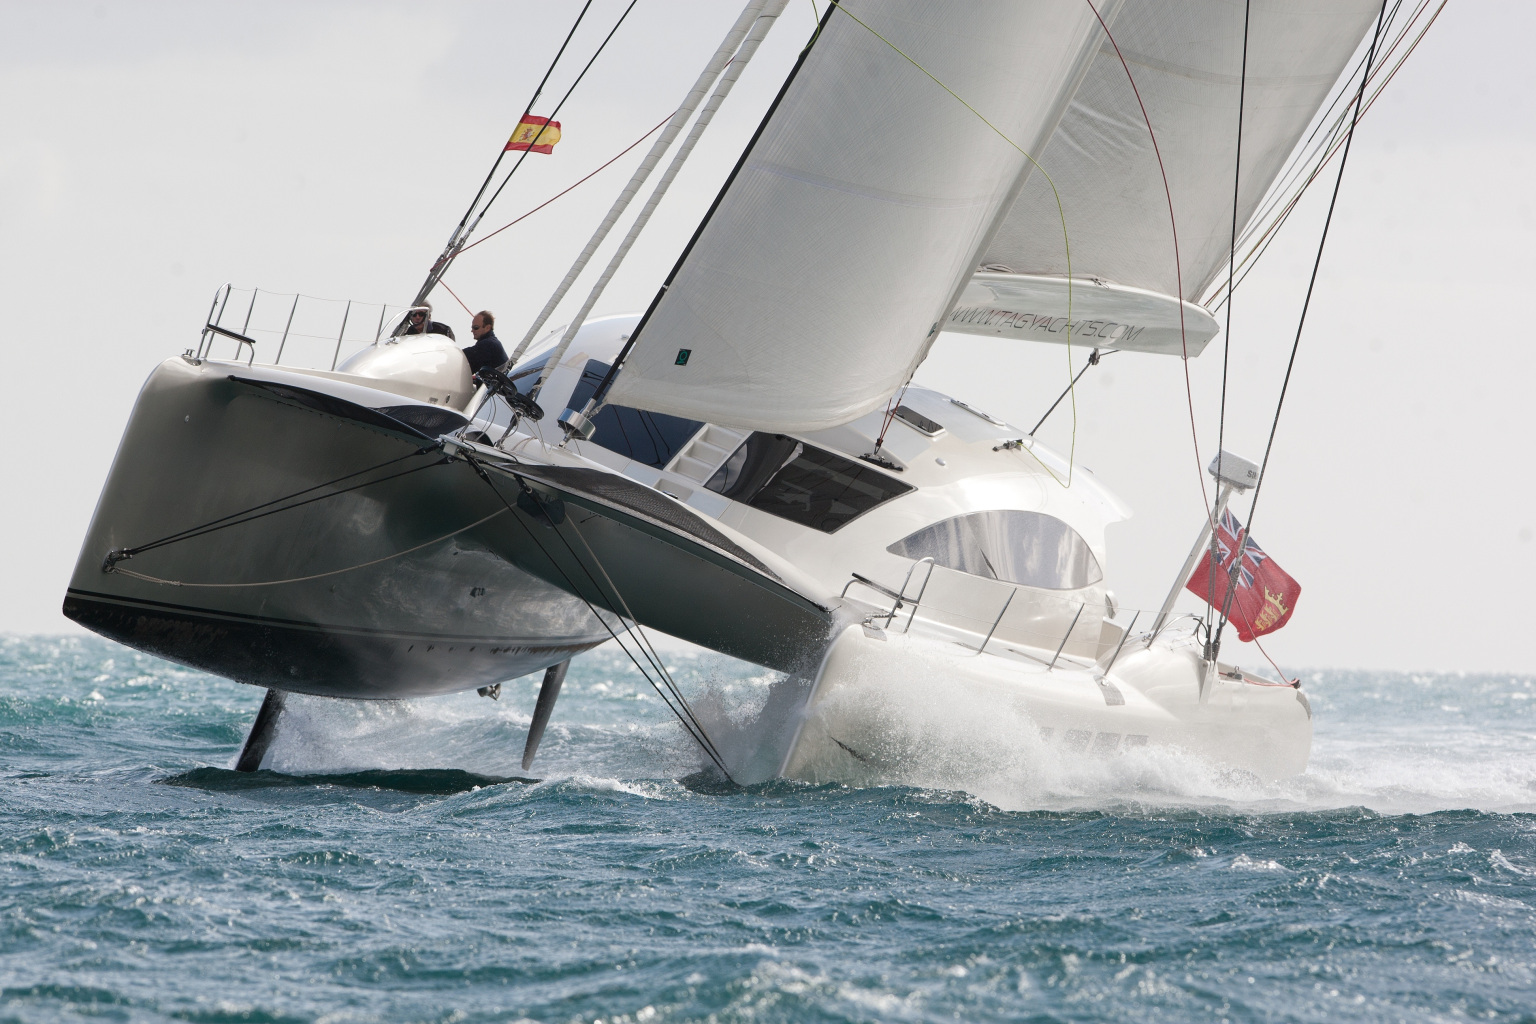 Tropical Island Yacht Record Entries And More Exciting Sailing For Audi Hamilton